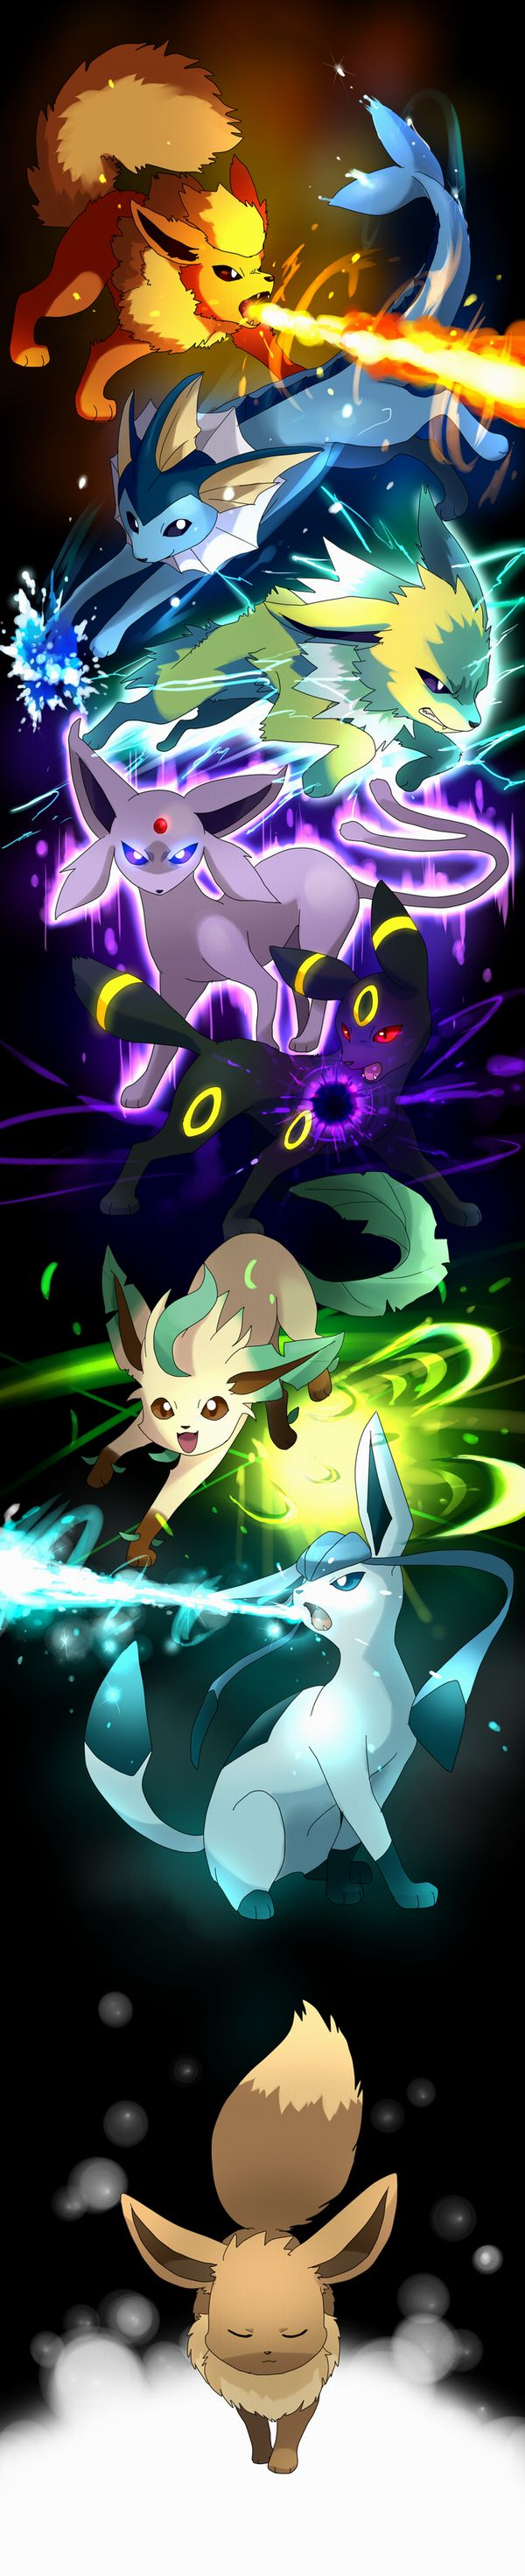 + Sylveon = all eeveeloutions! I like them all but I think my favorite has to be Umbreon :)